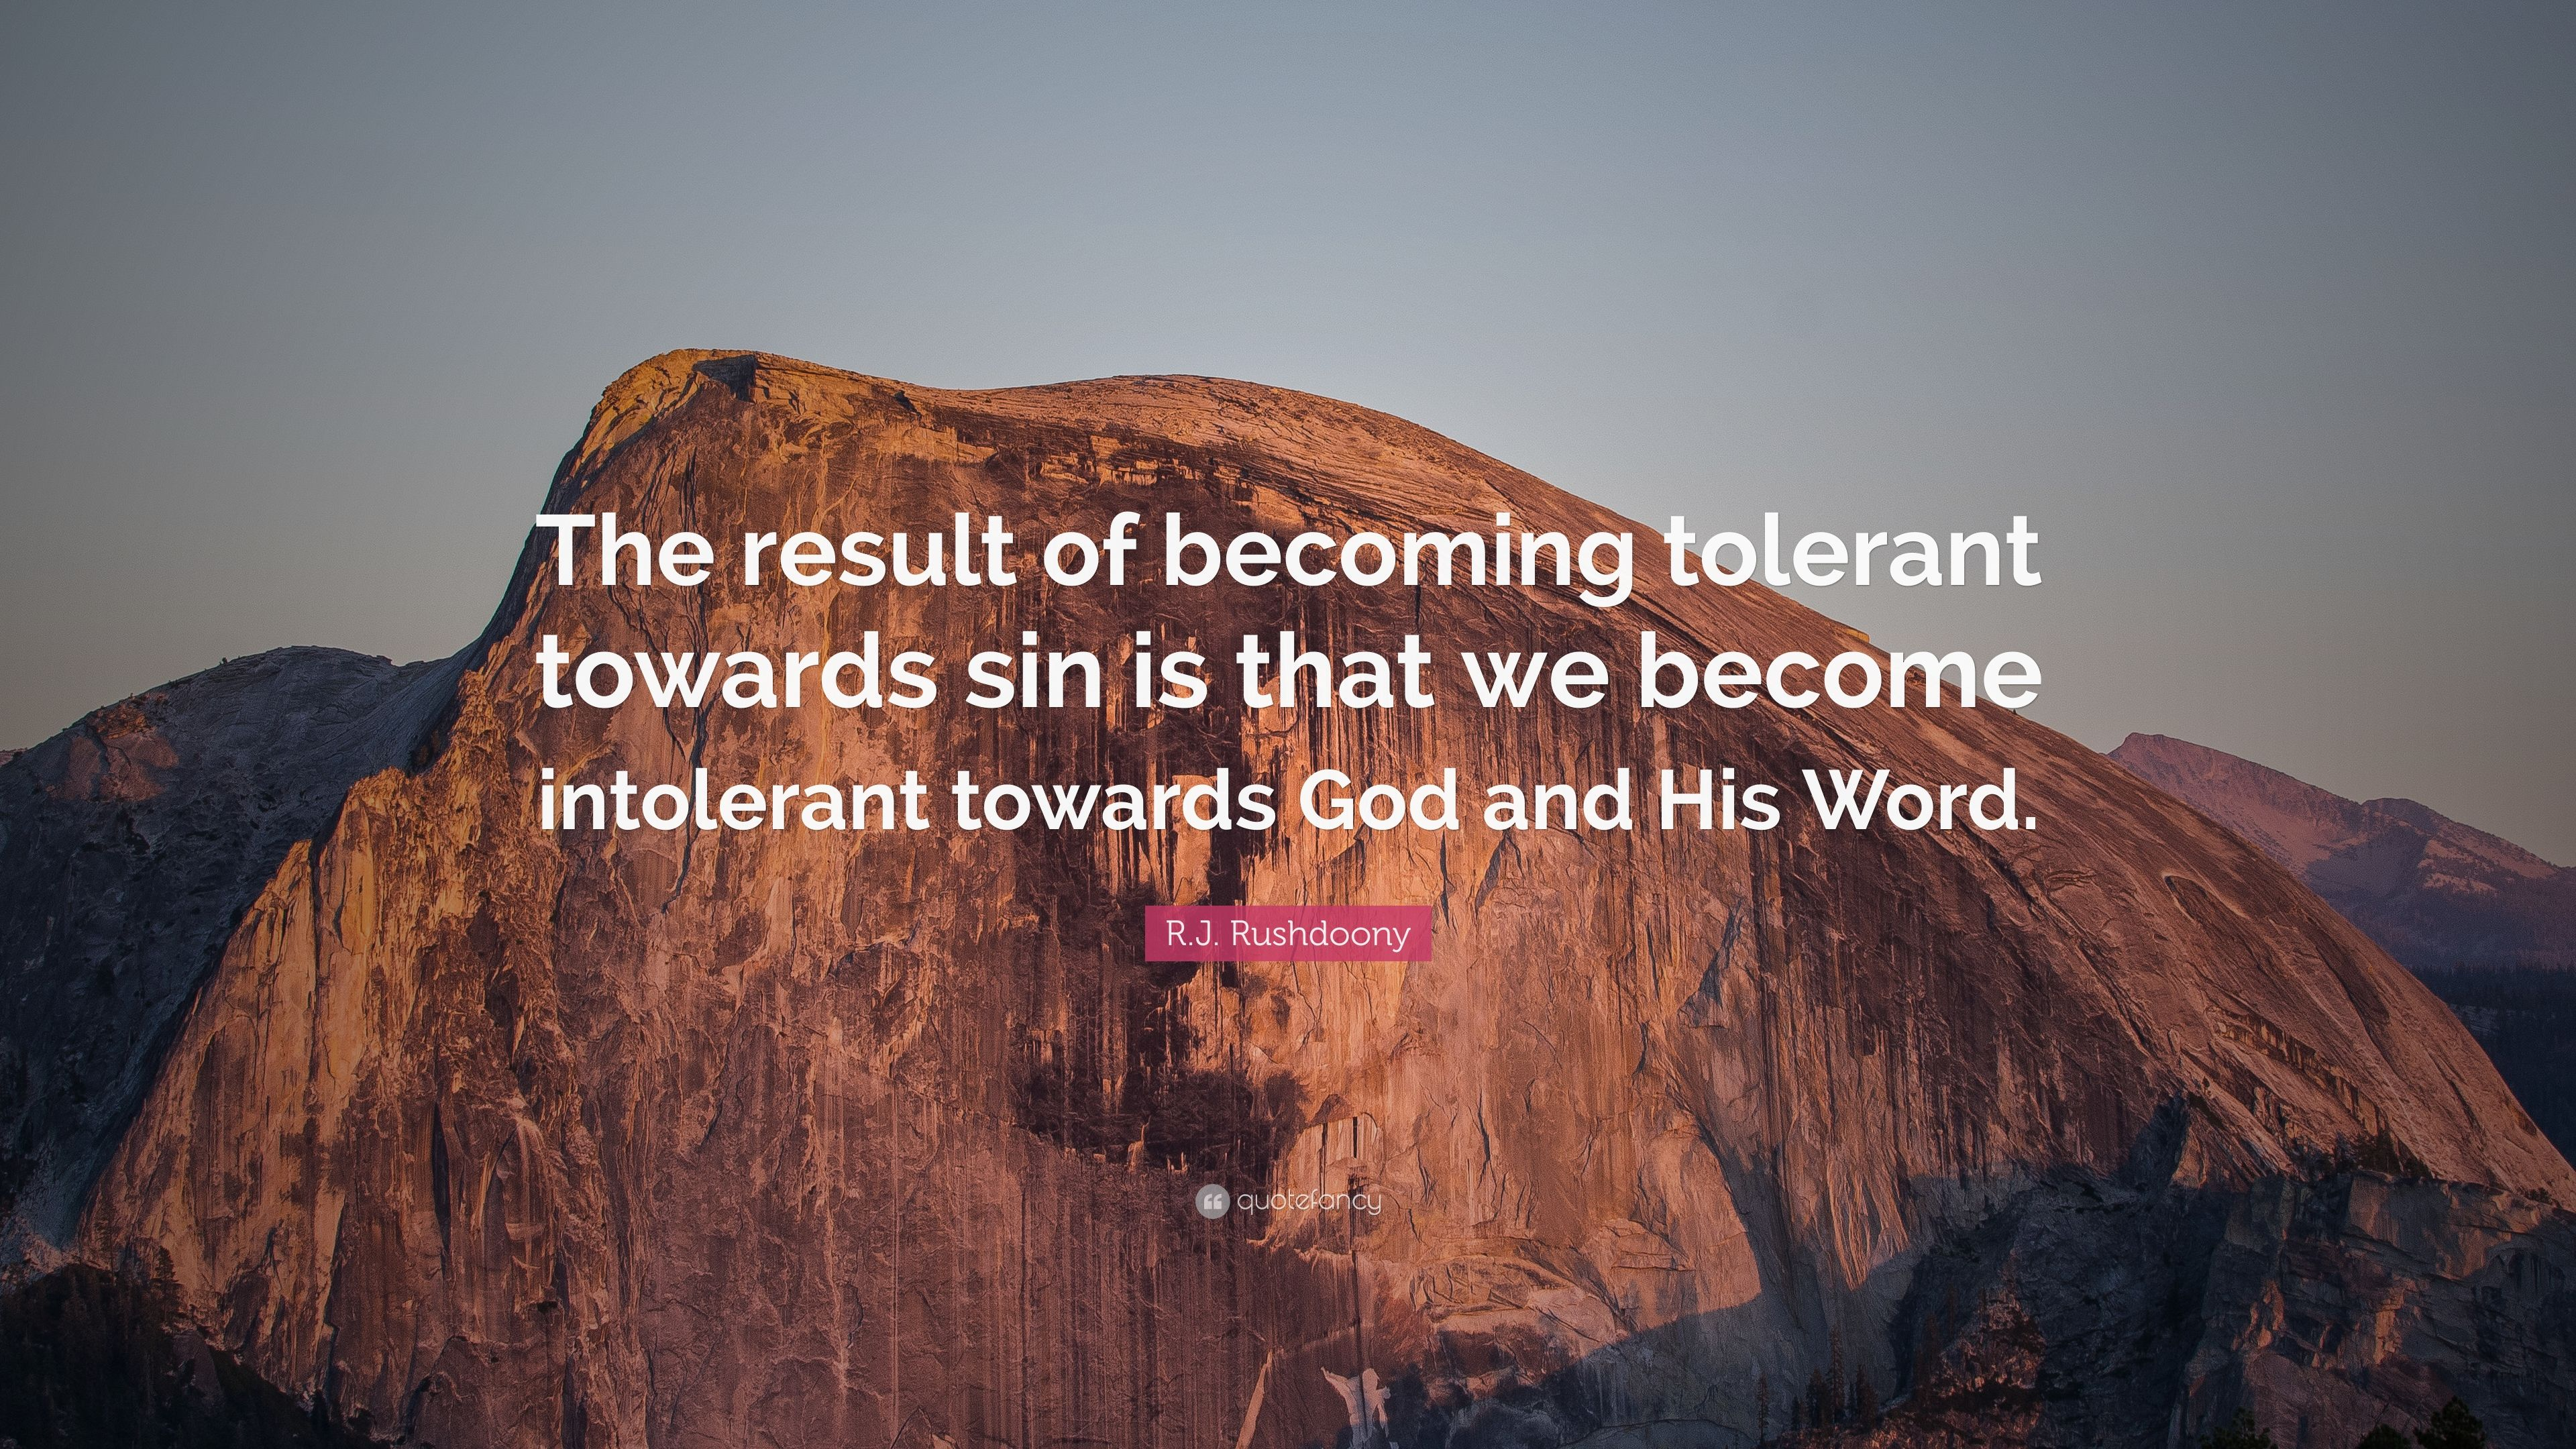 RJ Rushdoony Quote The Result Of Becoming Tolerant Towards Sin Is That We Become